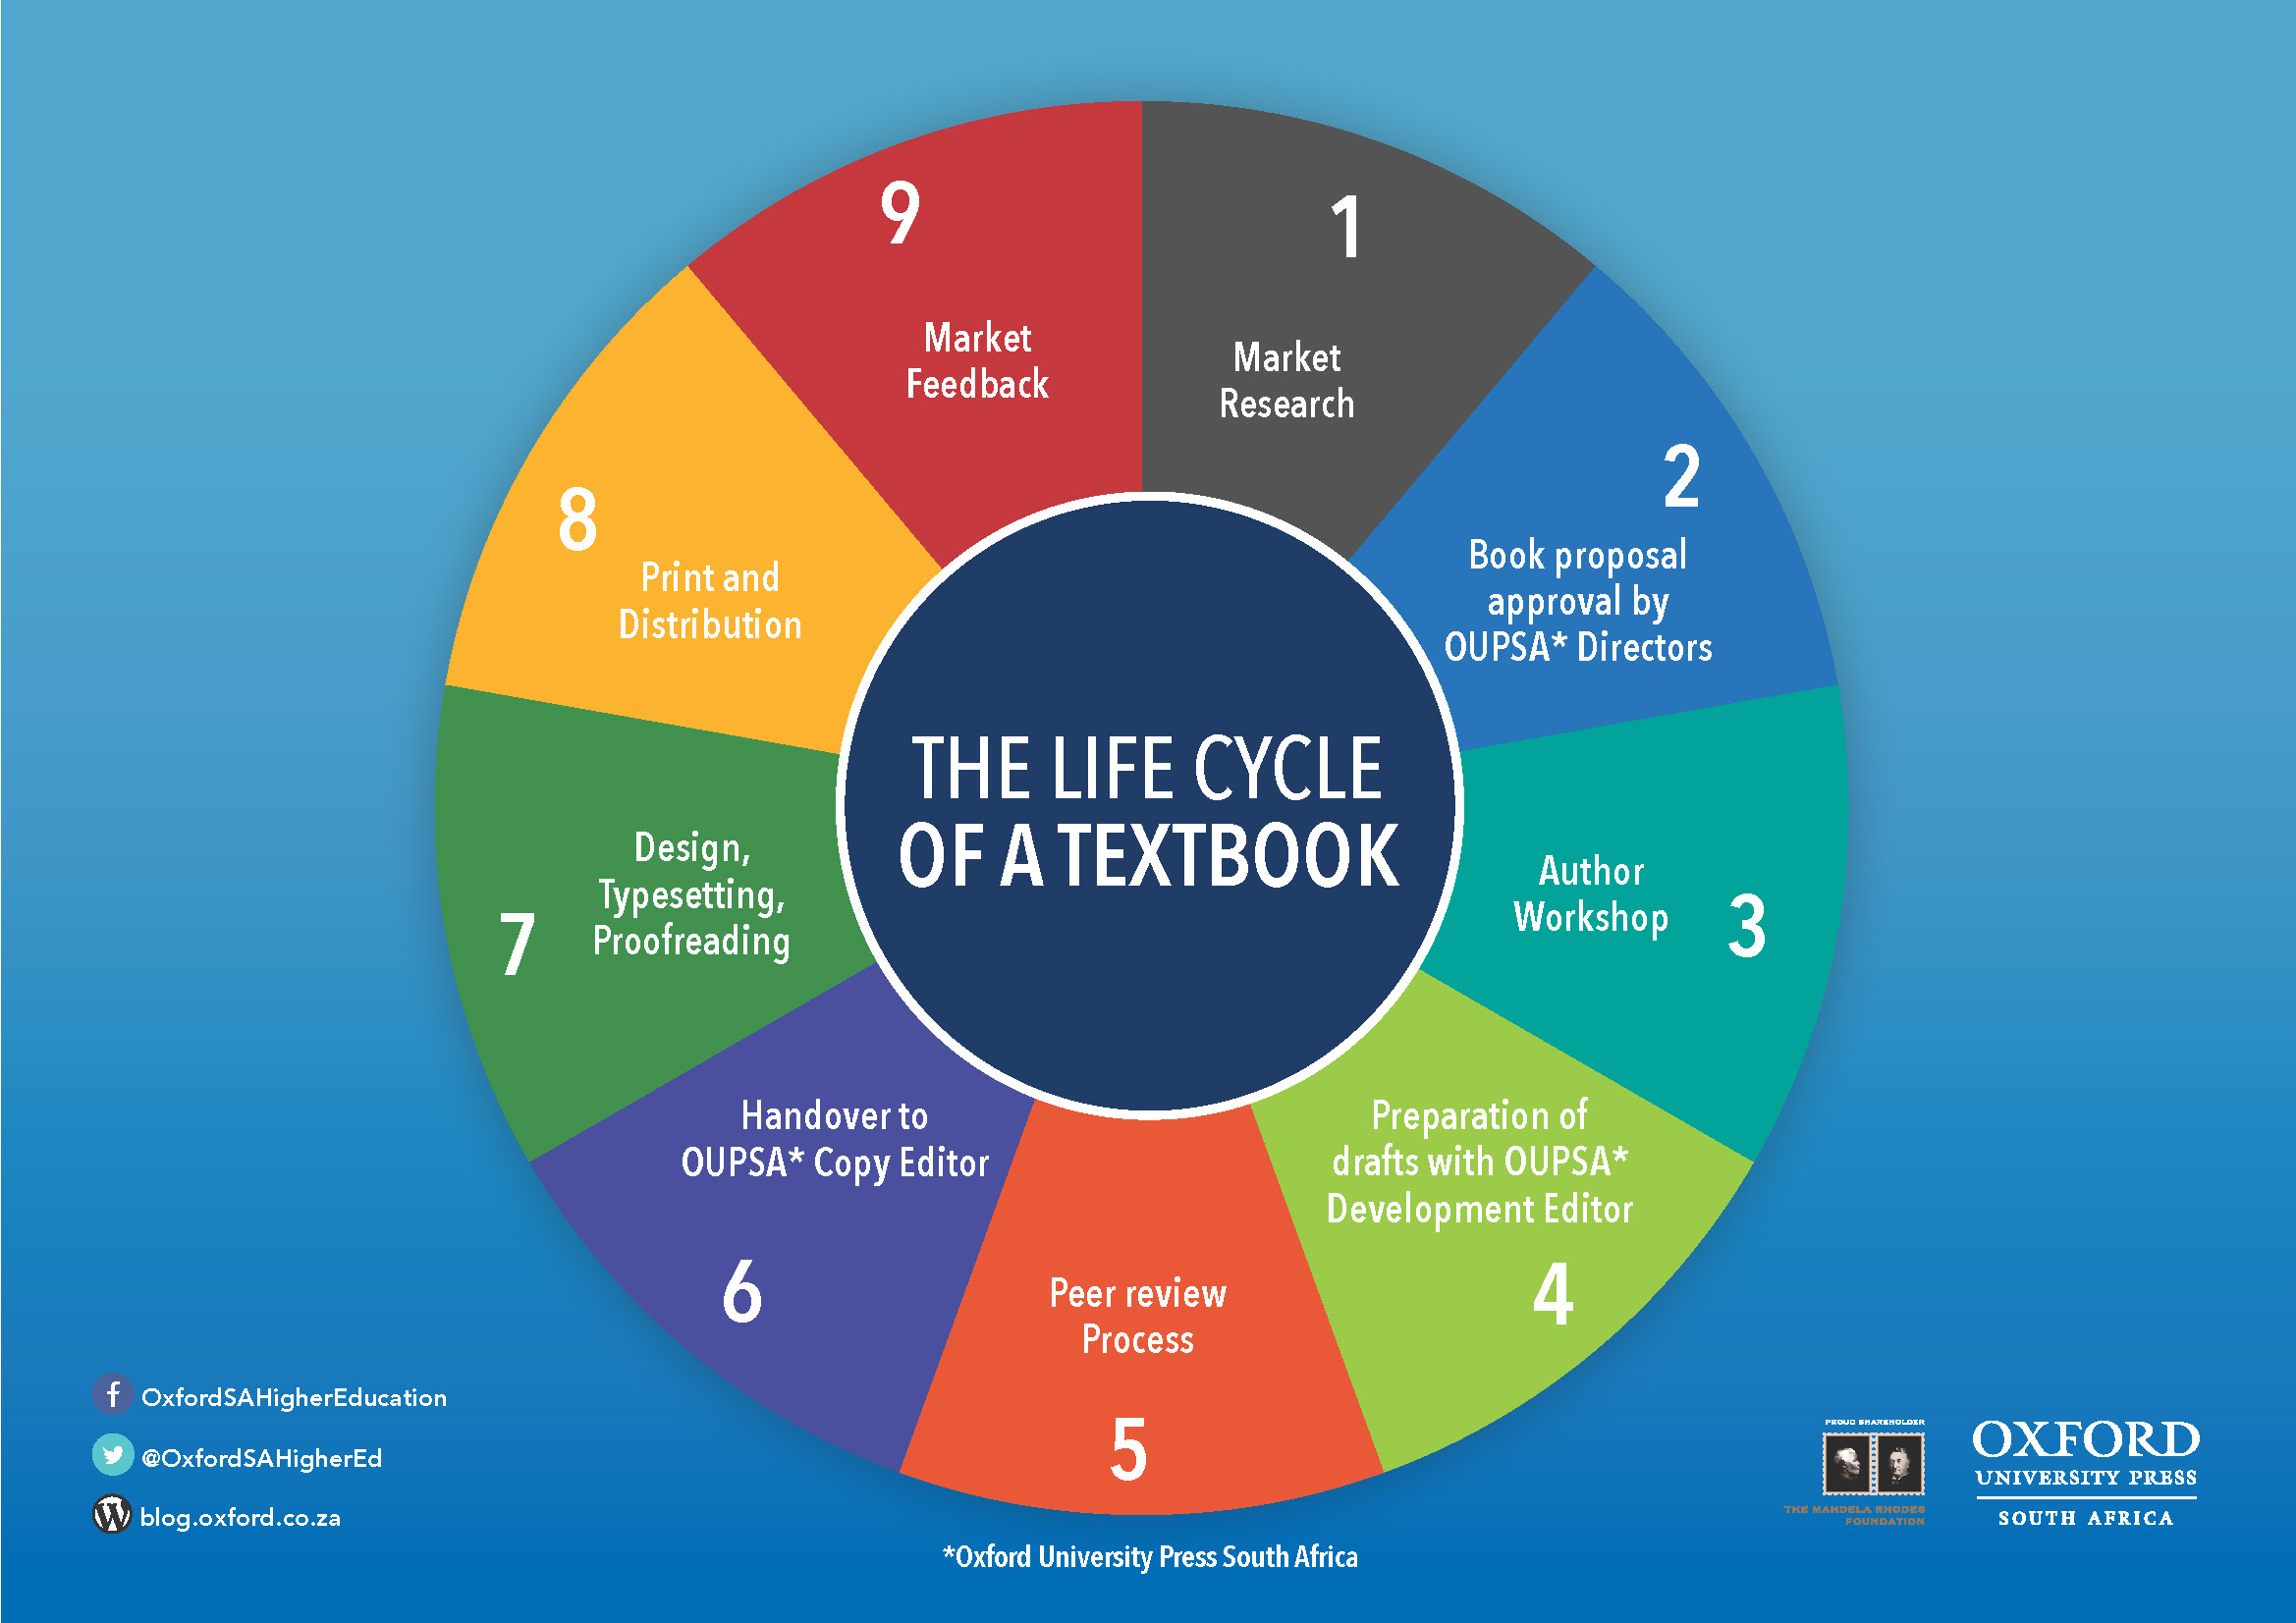 The life cycle of a textbook